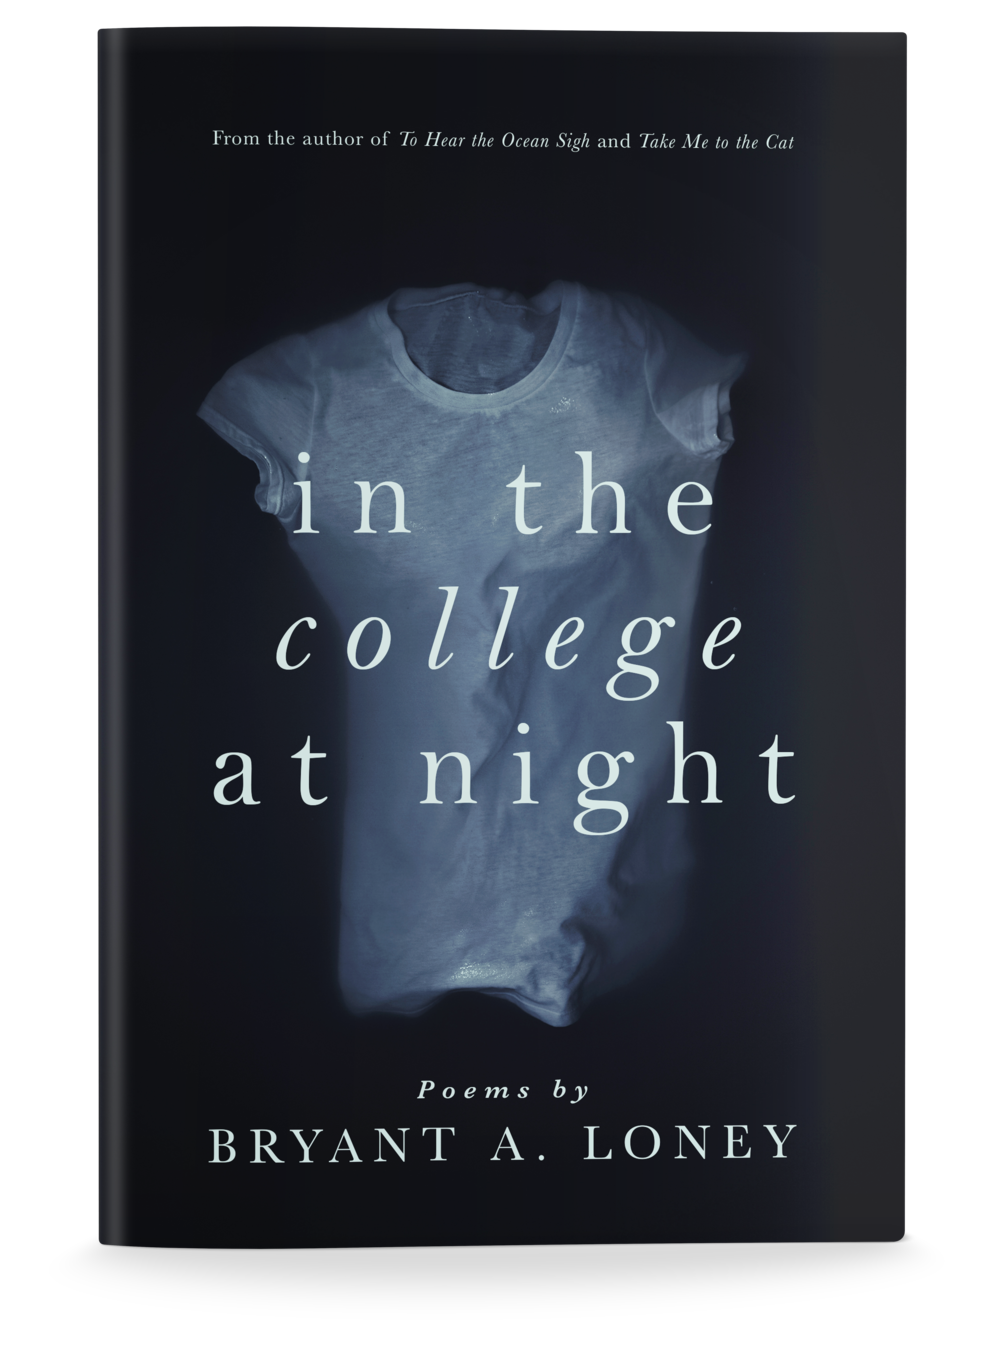 In the College at Night - ________________________Authored by Bryant A. LoneyPublished by PeppernellIn the College at Night is about a young man's coming of age within the complexities of campus life. Full of pathos, poignancy, and provoking introspection, this poetry collection guides readers through the quiet magic of a summer romance, the generational restlessness of packed parties, the angst of a hopeless relationship, and the self-reflection of graduation afternoon. In the style of spoken word poets such as Phil Kaye and Rudy Francisco, Loney's poems capture the clumsiness and spirit of today's youth and their rampaging wild hearts.Coming April 16, 2019.